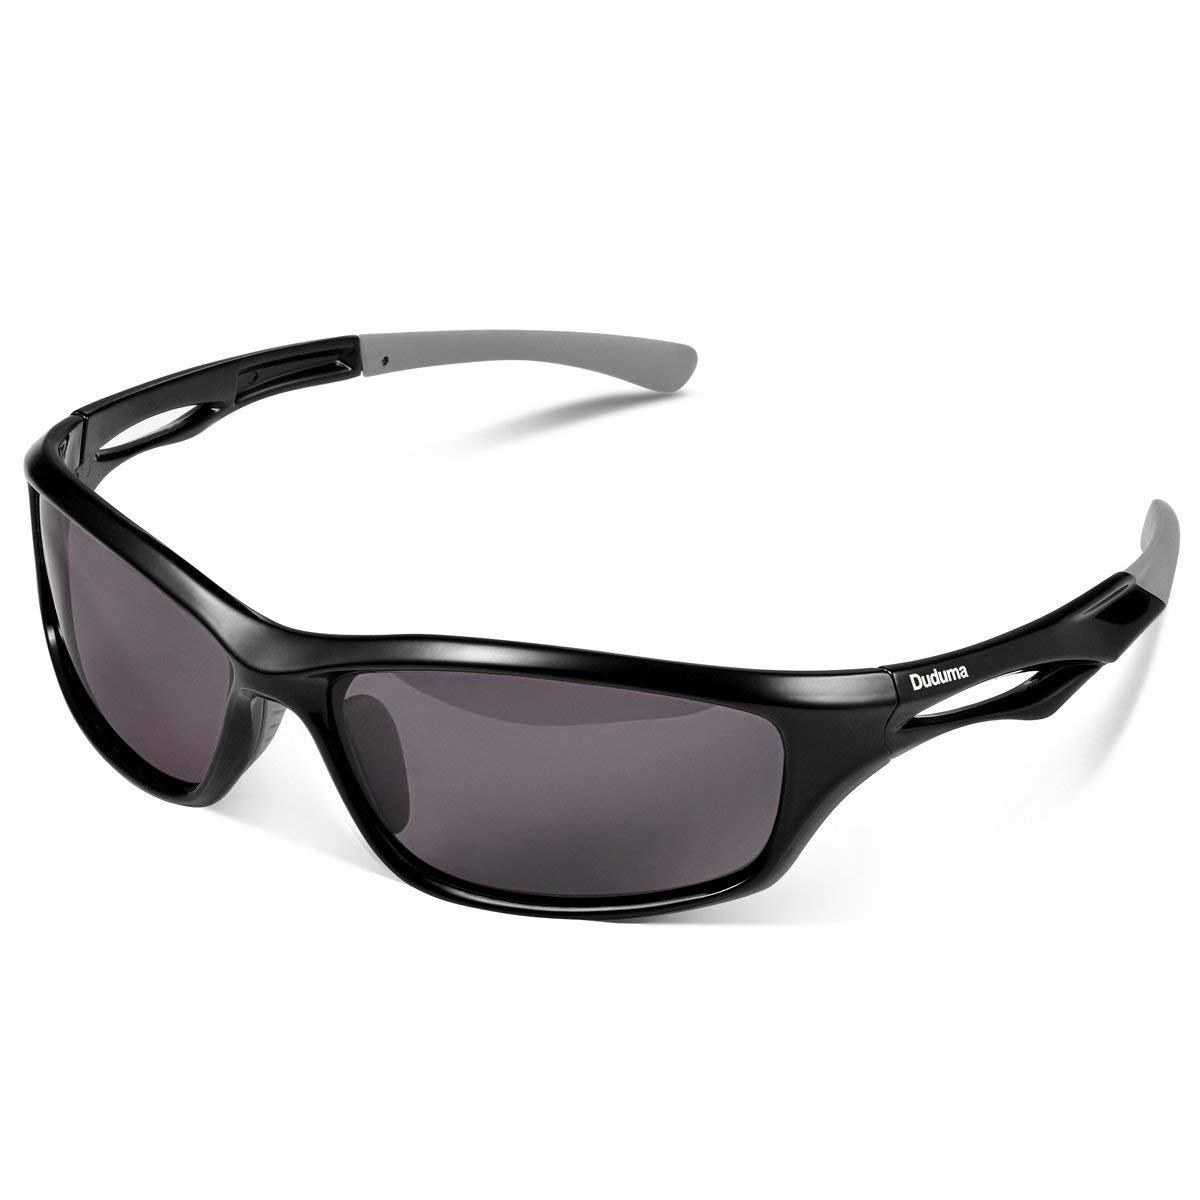 fb57f895223 5 Best Fishing Sunglasses Under 50 – 2018 Reviews and Buying Guide